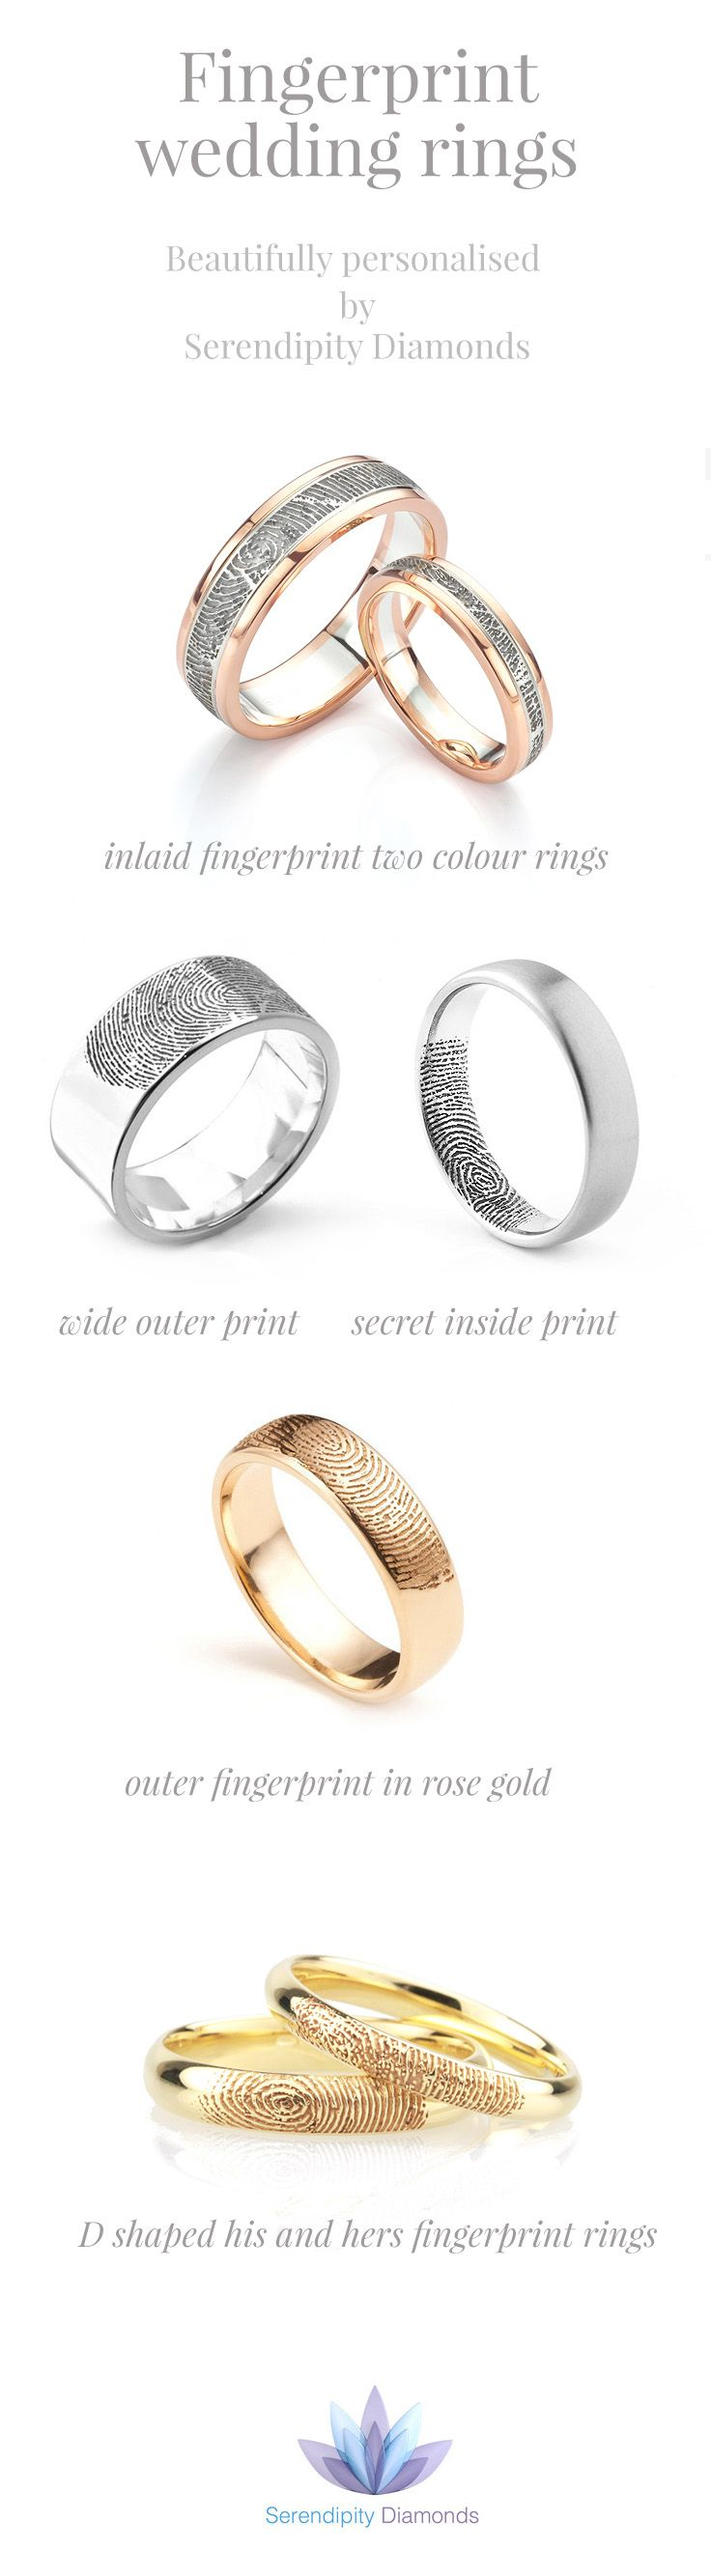 ideas fresh inspirations new of elegant concept vancouver ring fingerprint rings wedding